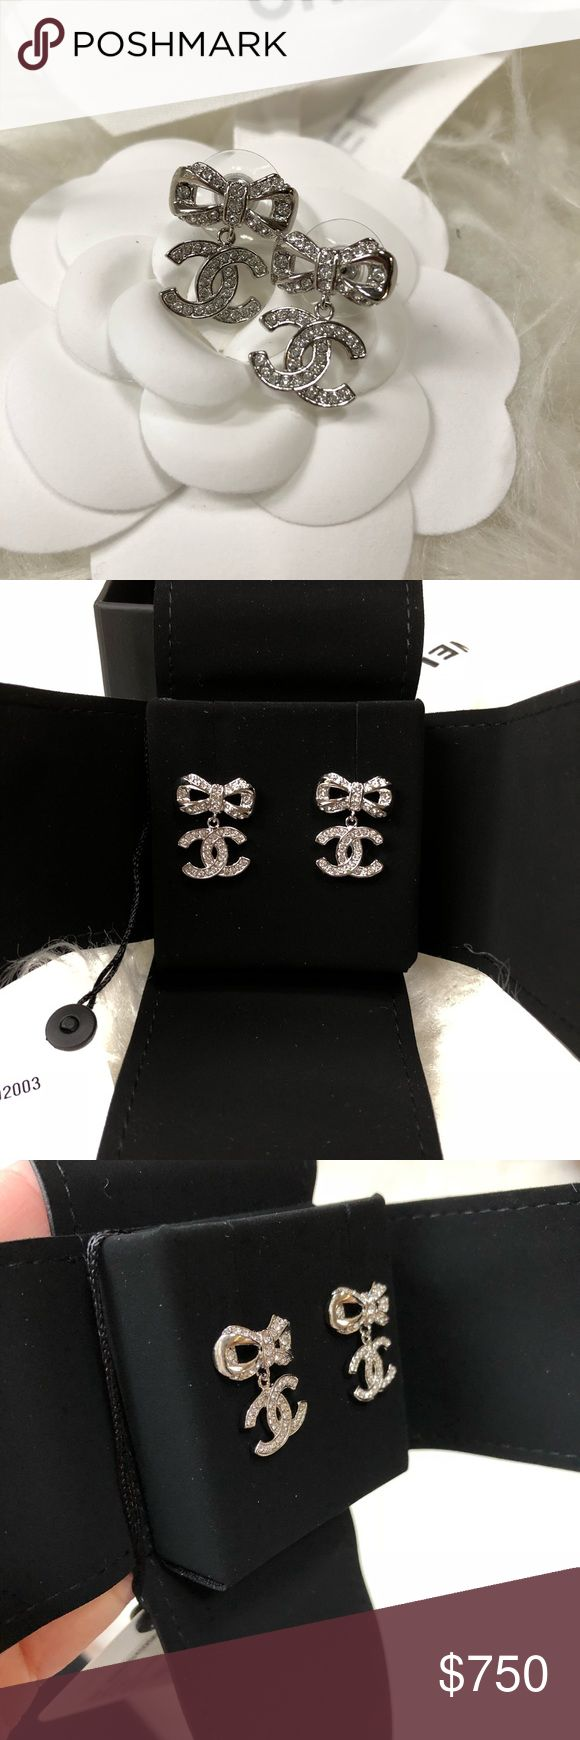 18P A98010 Chanel Crystal Bow CC Dangling Earrings Brand new! From the current collection. Silver. Looks even better in person! It sparkles 😍 ✨ will come with box, tag, ribbon, and camellia. I compared the size to a nickel in picture. Price FIRM on Posh. No Trades. CHANEL Jewelry Earrings